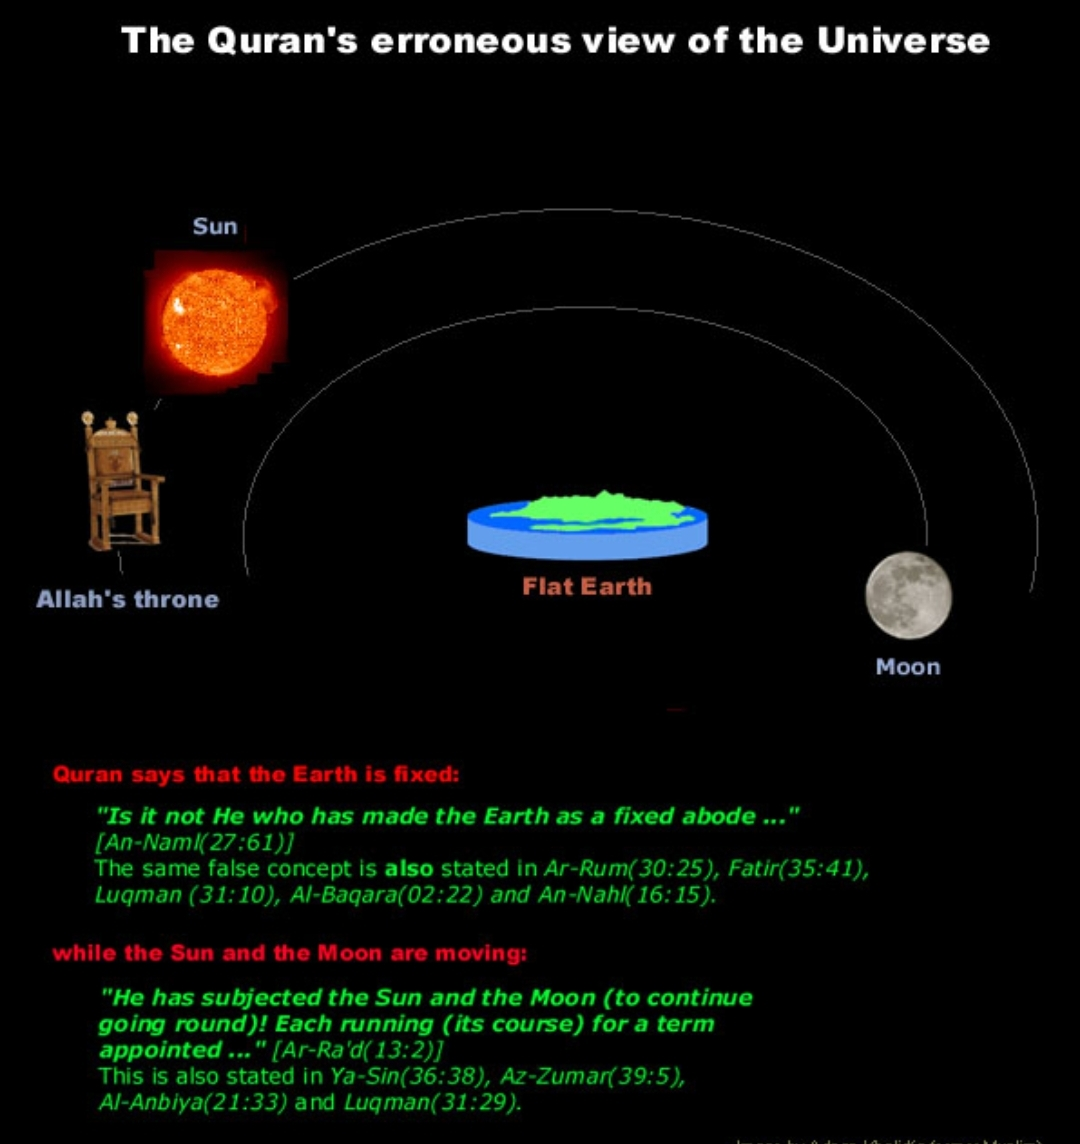 flat earth quran scientific errors hadith throne sun moon 27:61 30:25 35:41 31:10 02:22 16:15 13:2 36:38 39:5 21:33 31:29 evidence